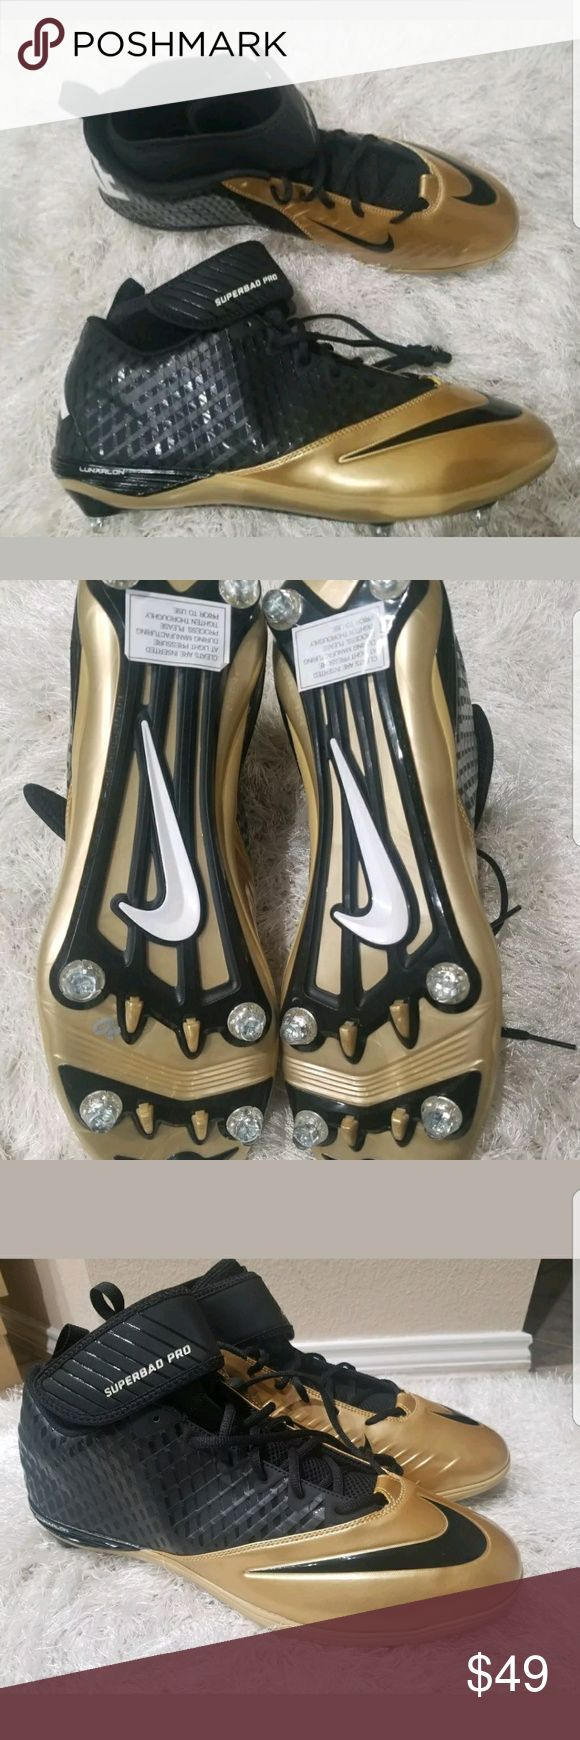 NIKE Lunarlon Super Bad Pro Football Cleats Shoes NIKE Lunarlon Super Bad Pro Football Cleats   Model 544762 020   Size 16   Color Gold Black   Brand new without box   Great Classic Cleats.   All items are packaged with care.   Thanks for looking! Nike Shoes Athletic Shoes